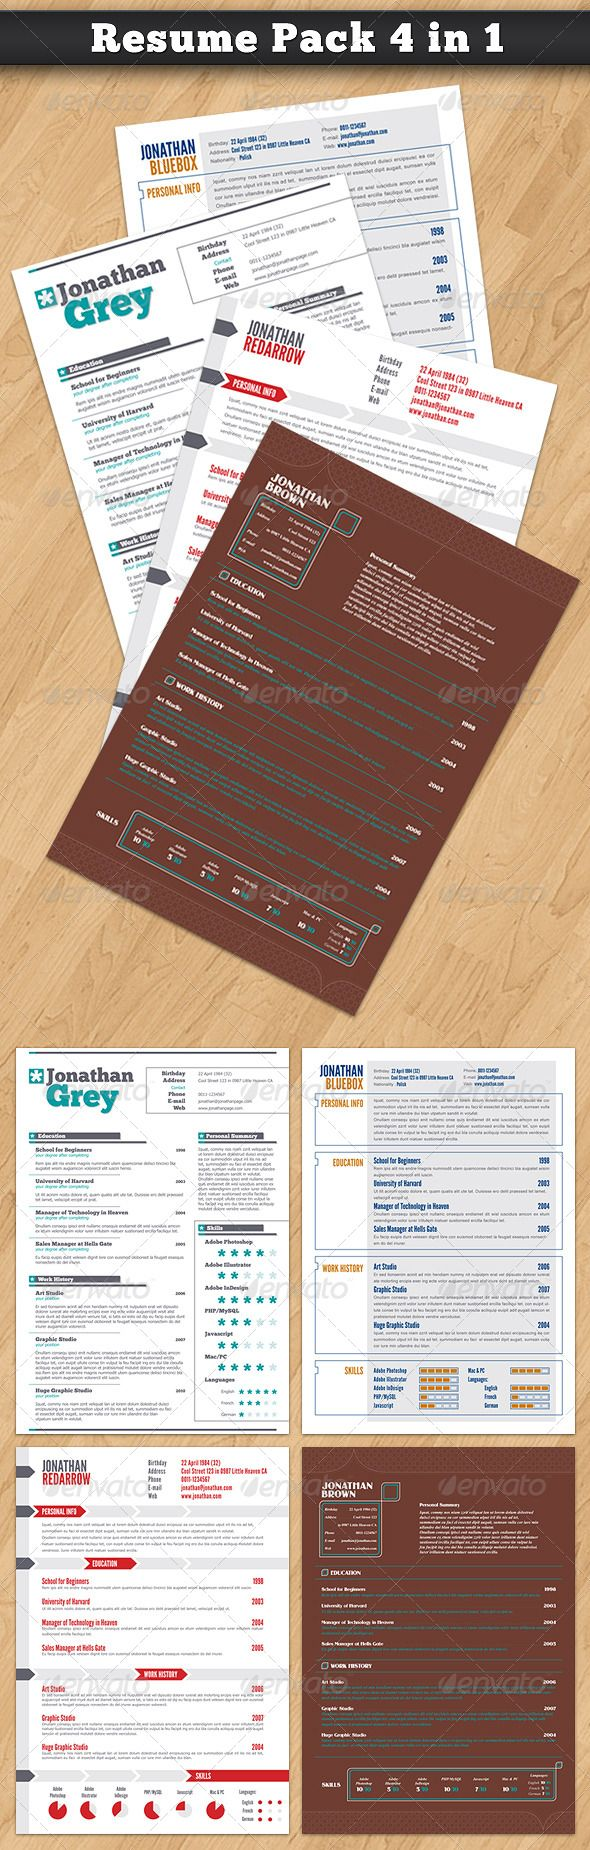 83 best images about print templates on pinterest